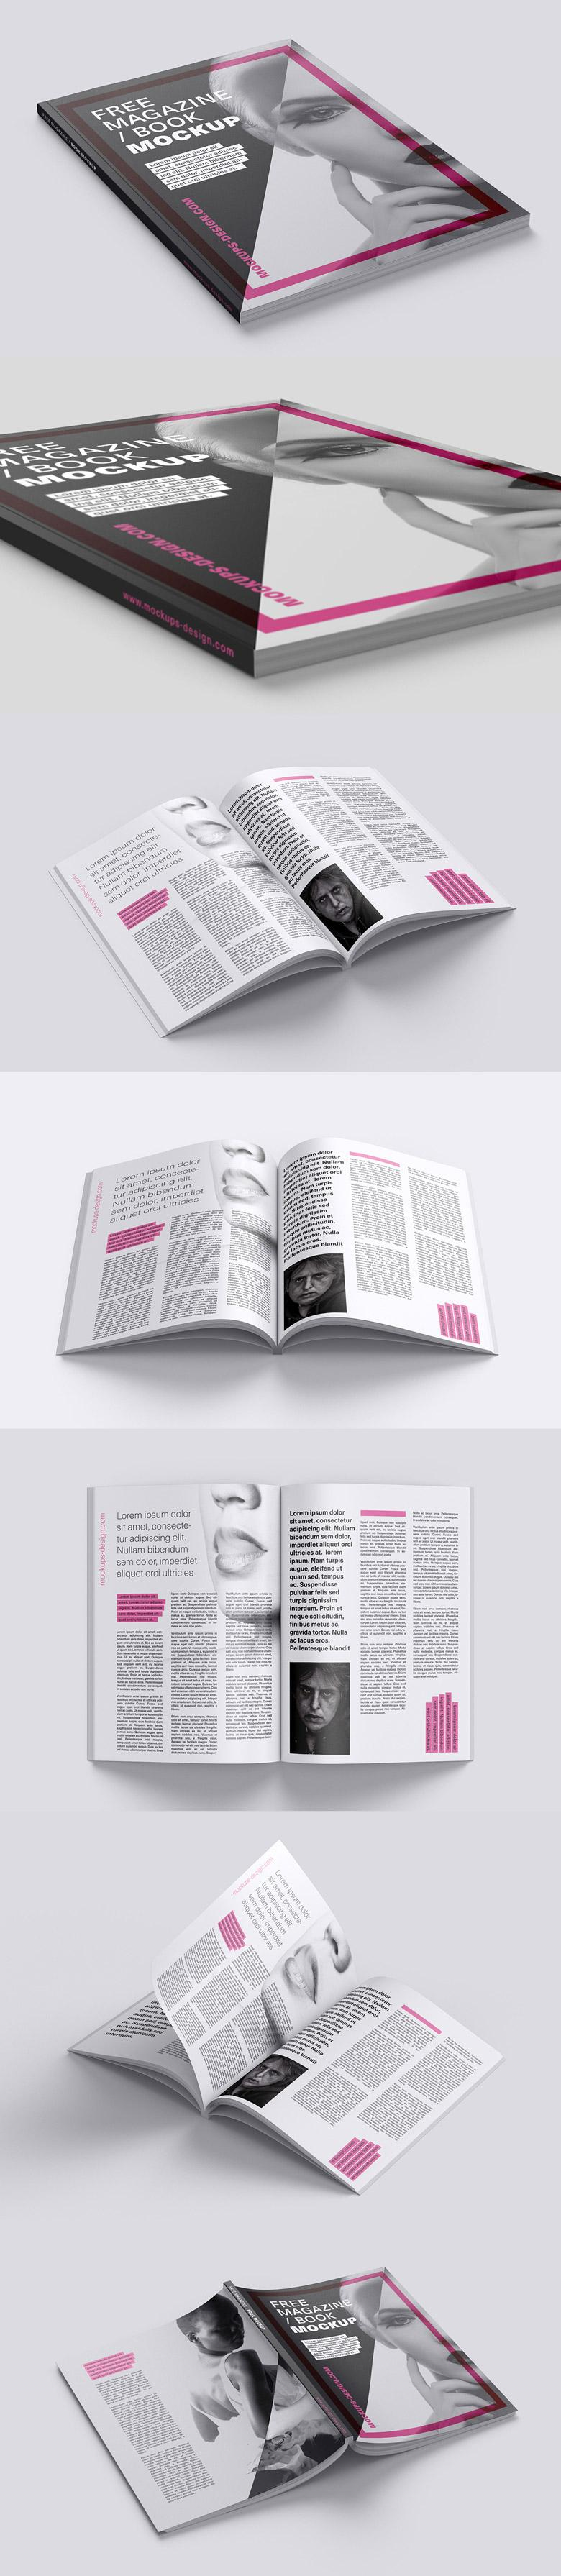 Magazine, Catalog, or Book Mockup Set